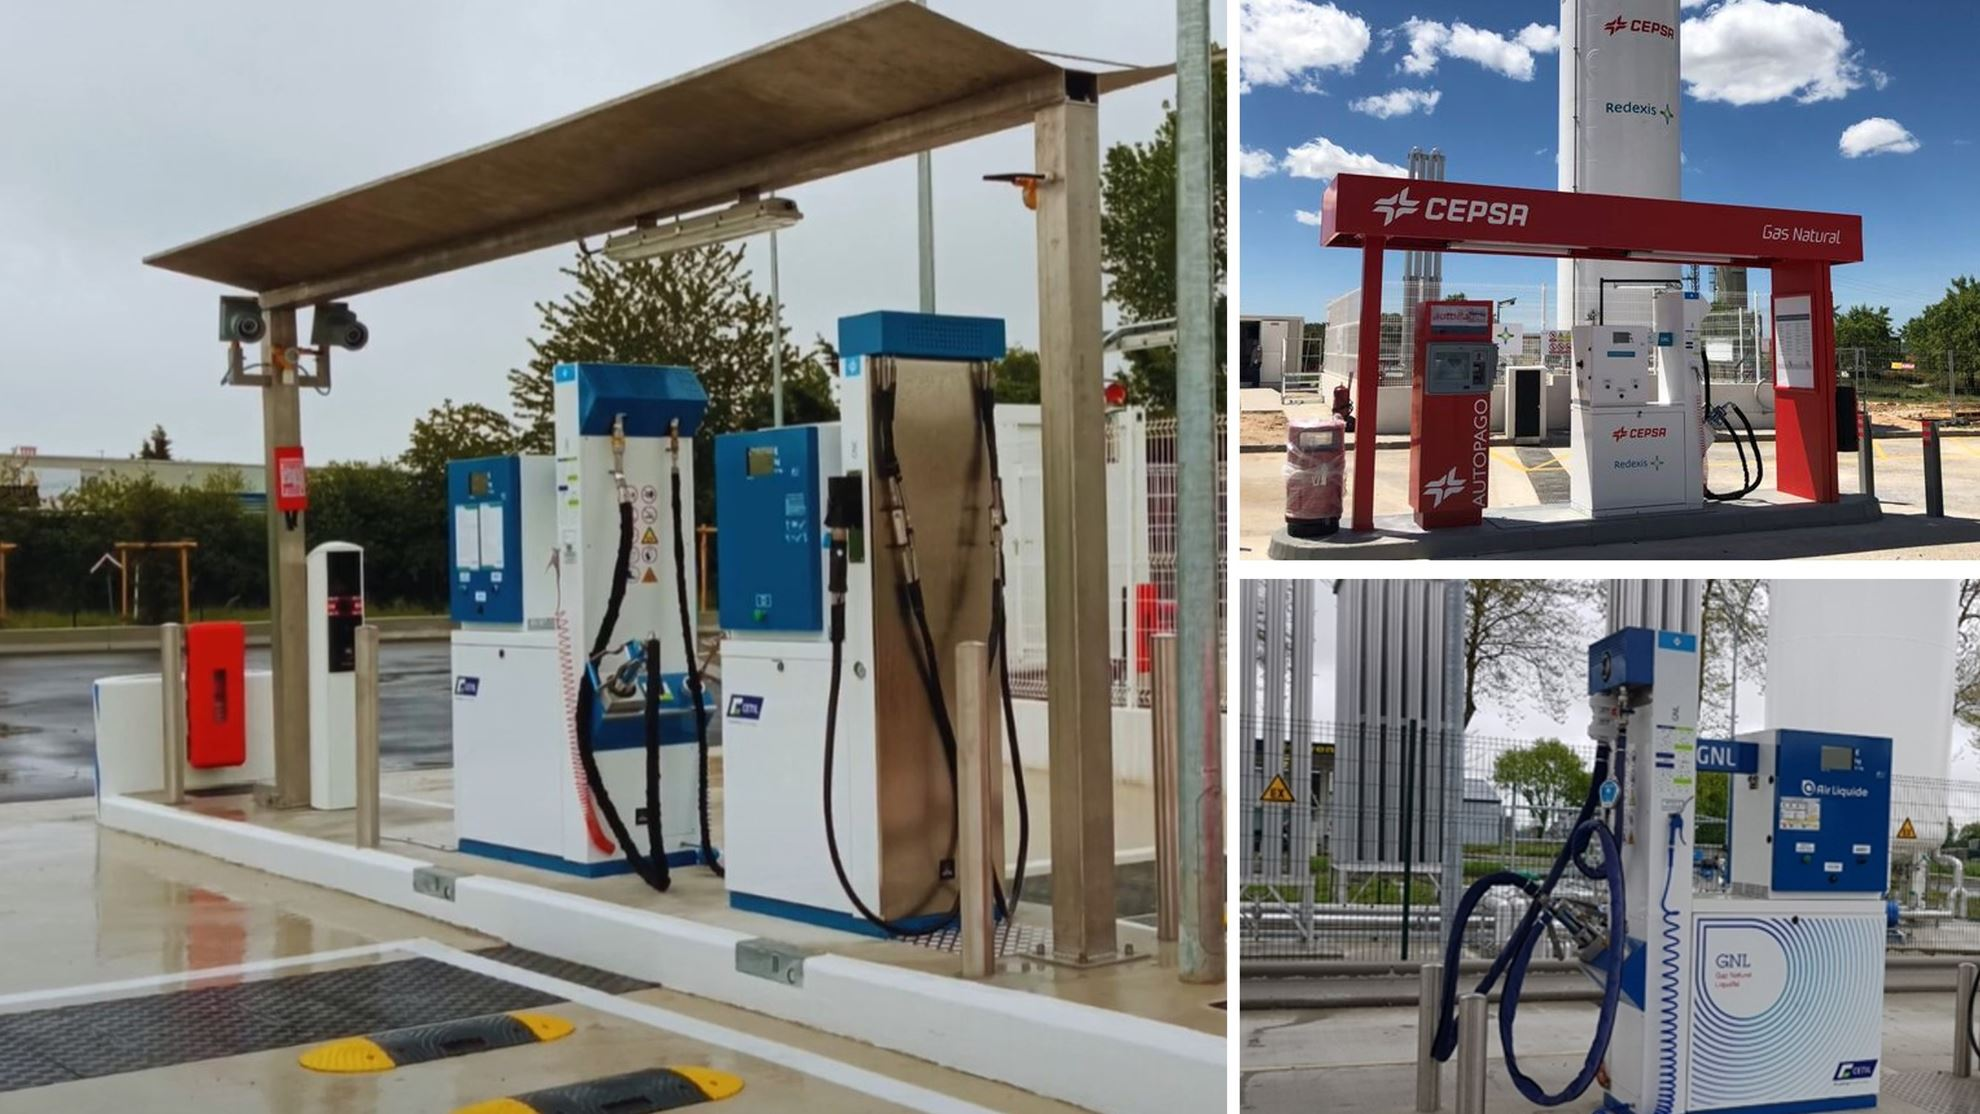 More gas stations with Cetil dispensers continue to open